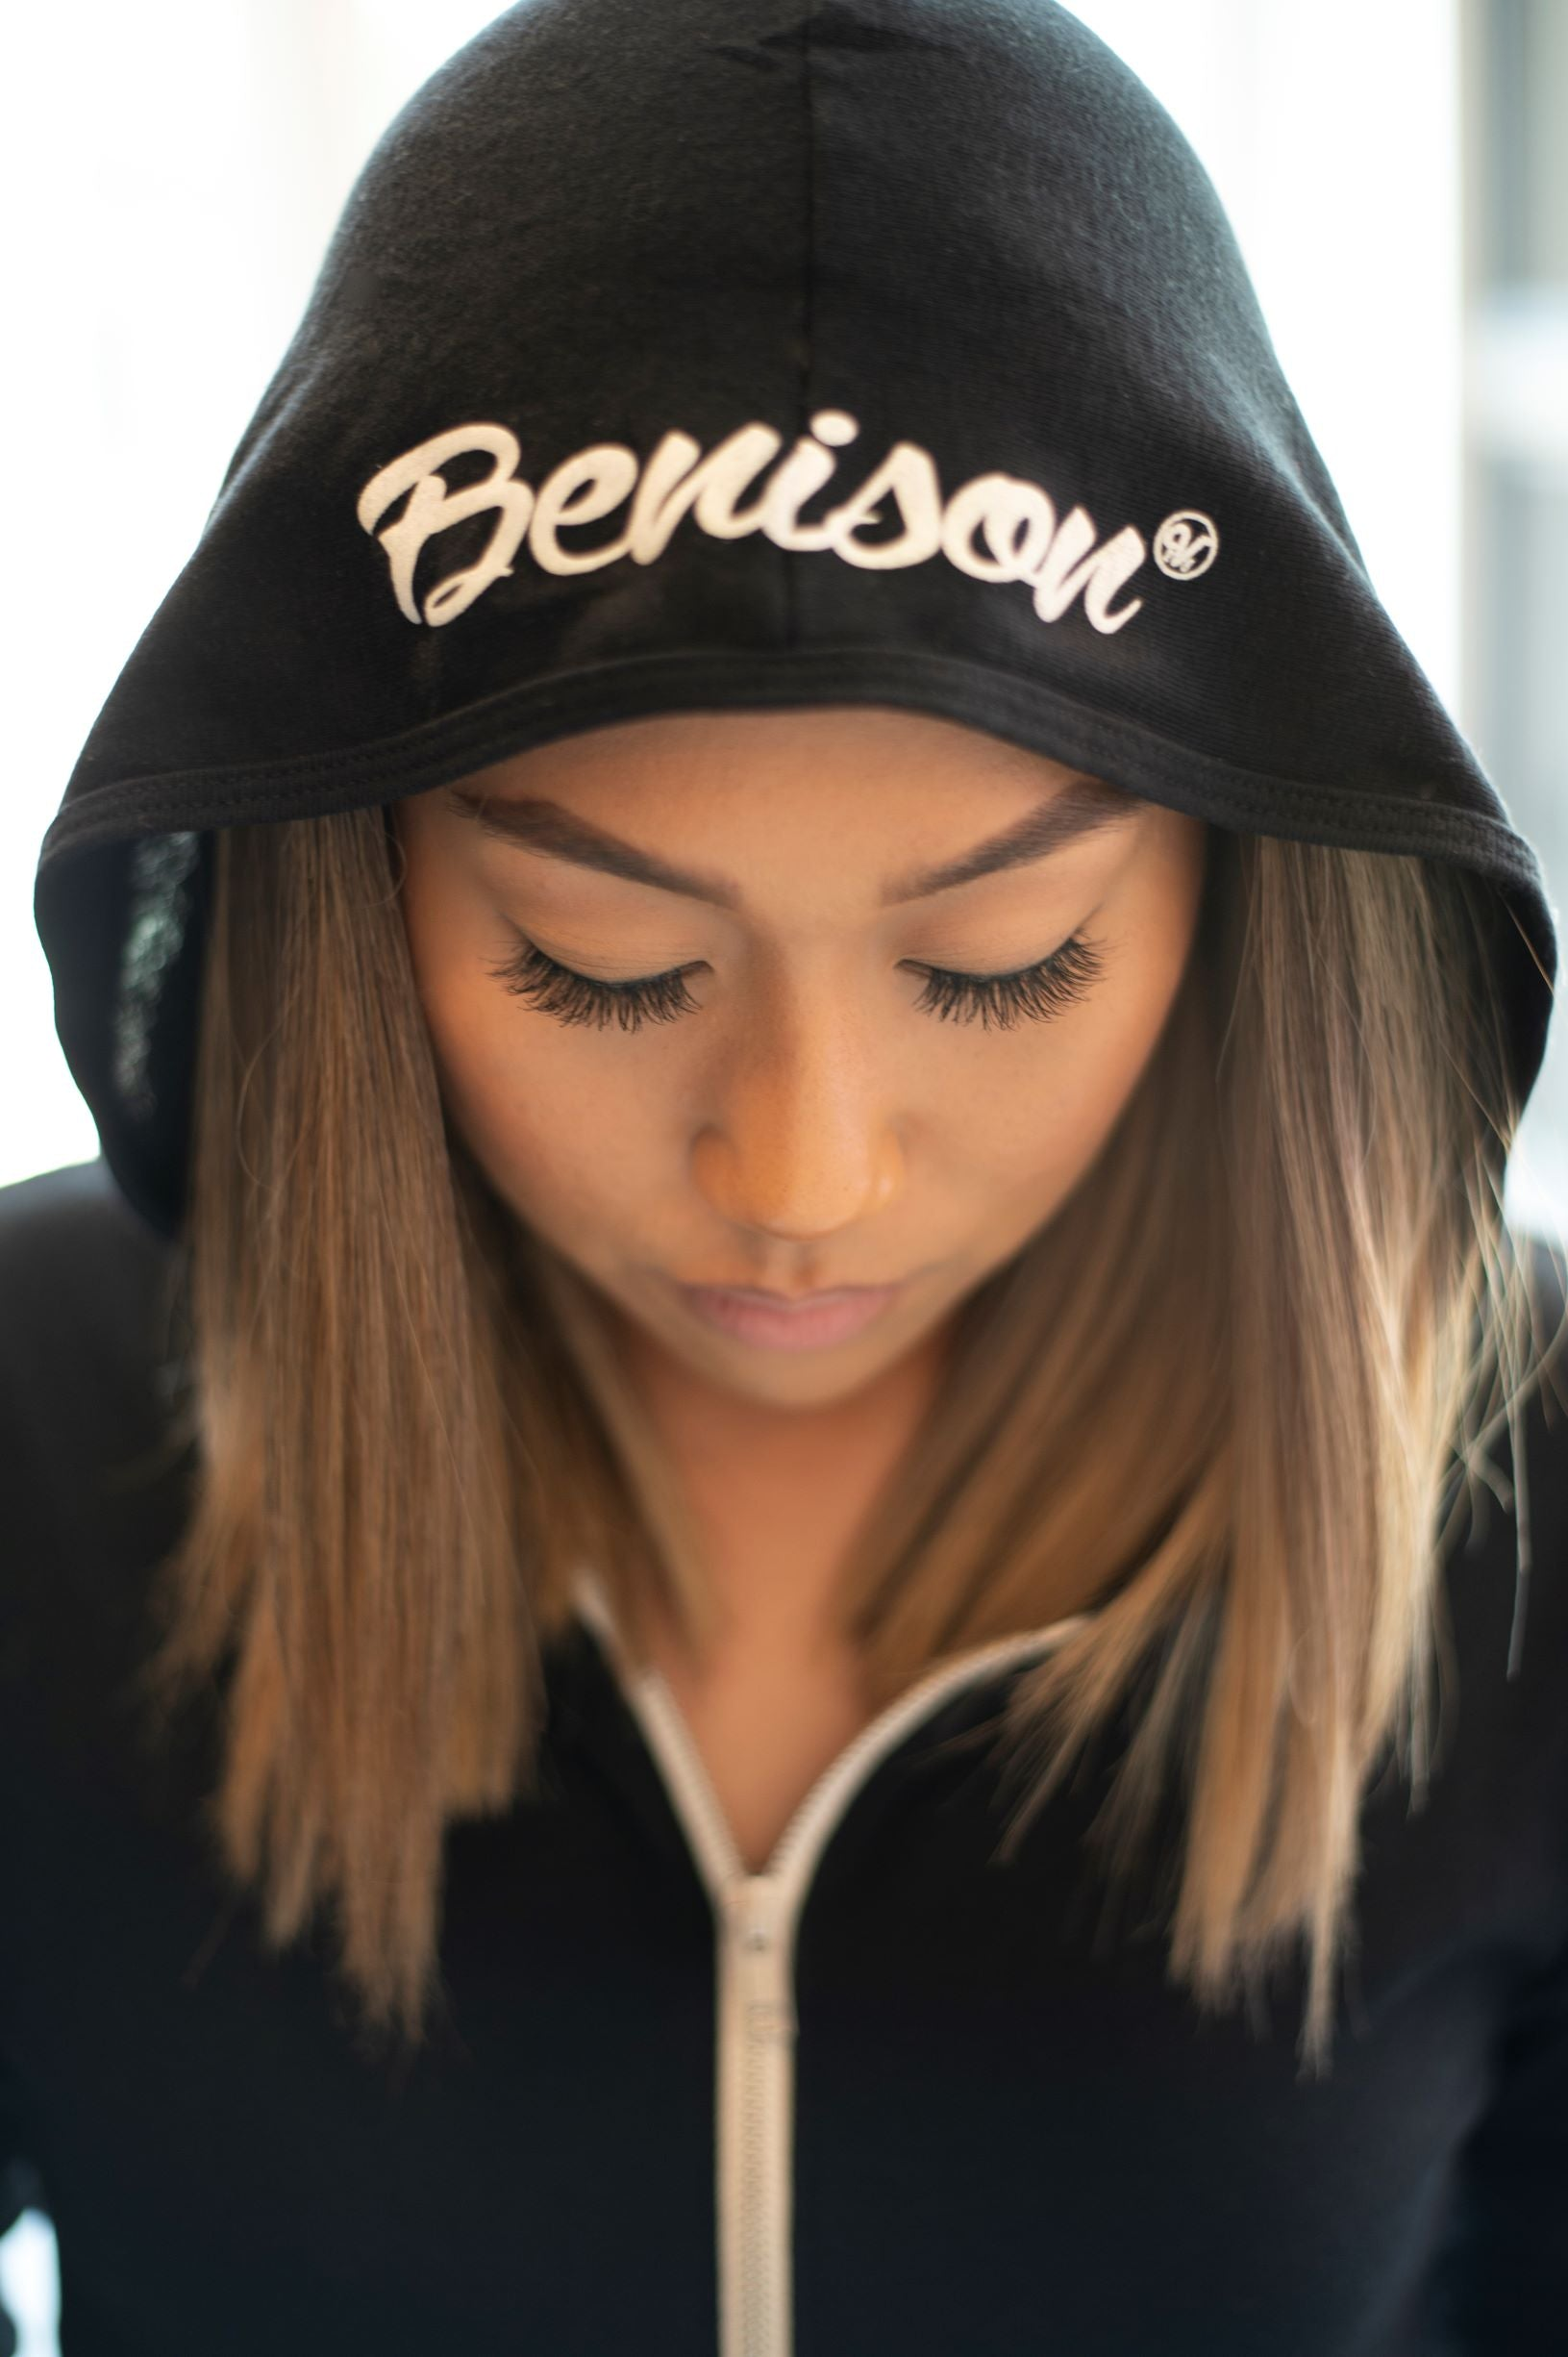 'Benison' Triblend Full Zip Light Hoodie